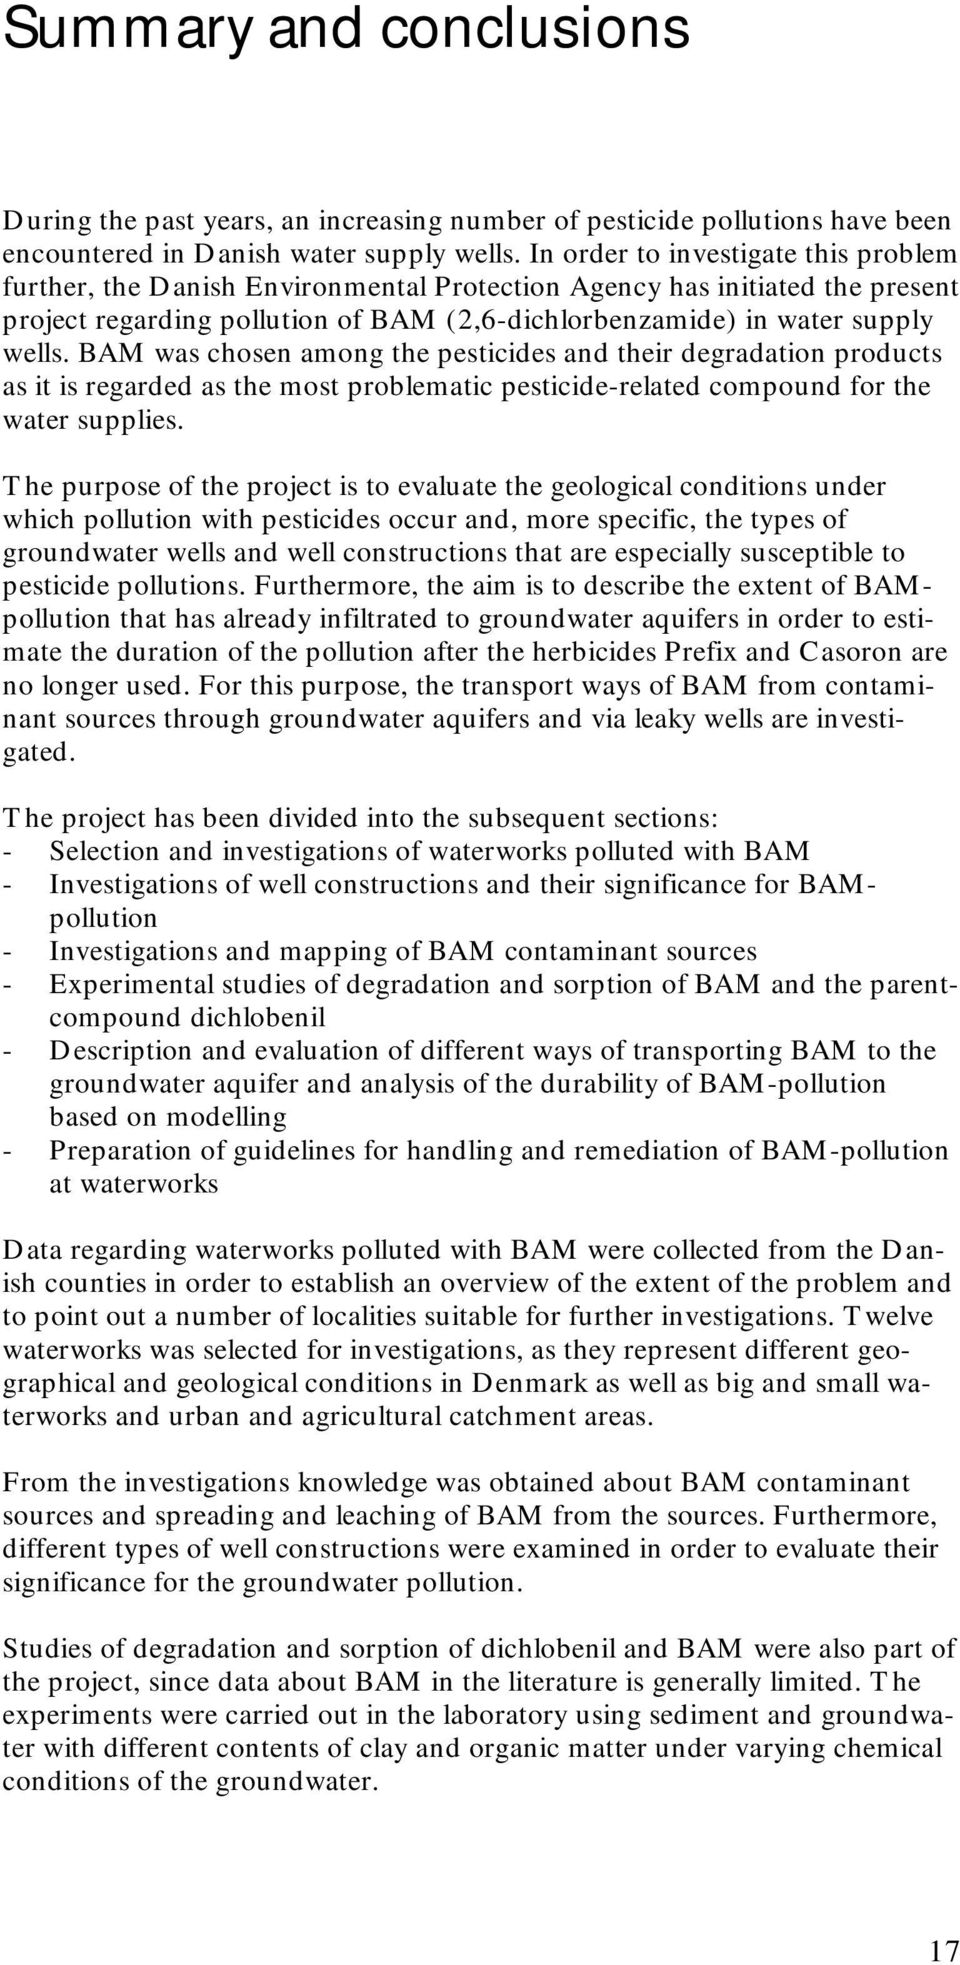 BAM was chosen among the pesticides and their degradation products as it is regarded as the most problematic pesticide-related compound for the water supplies.